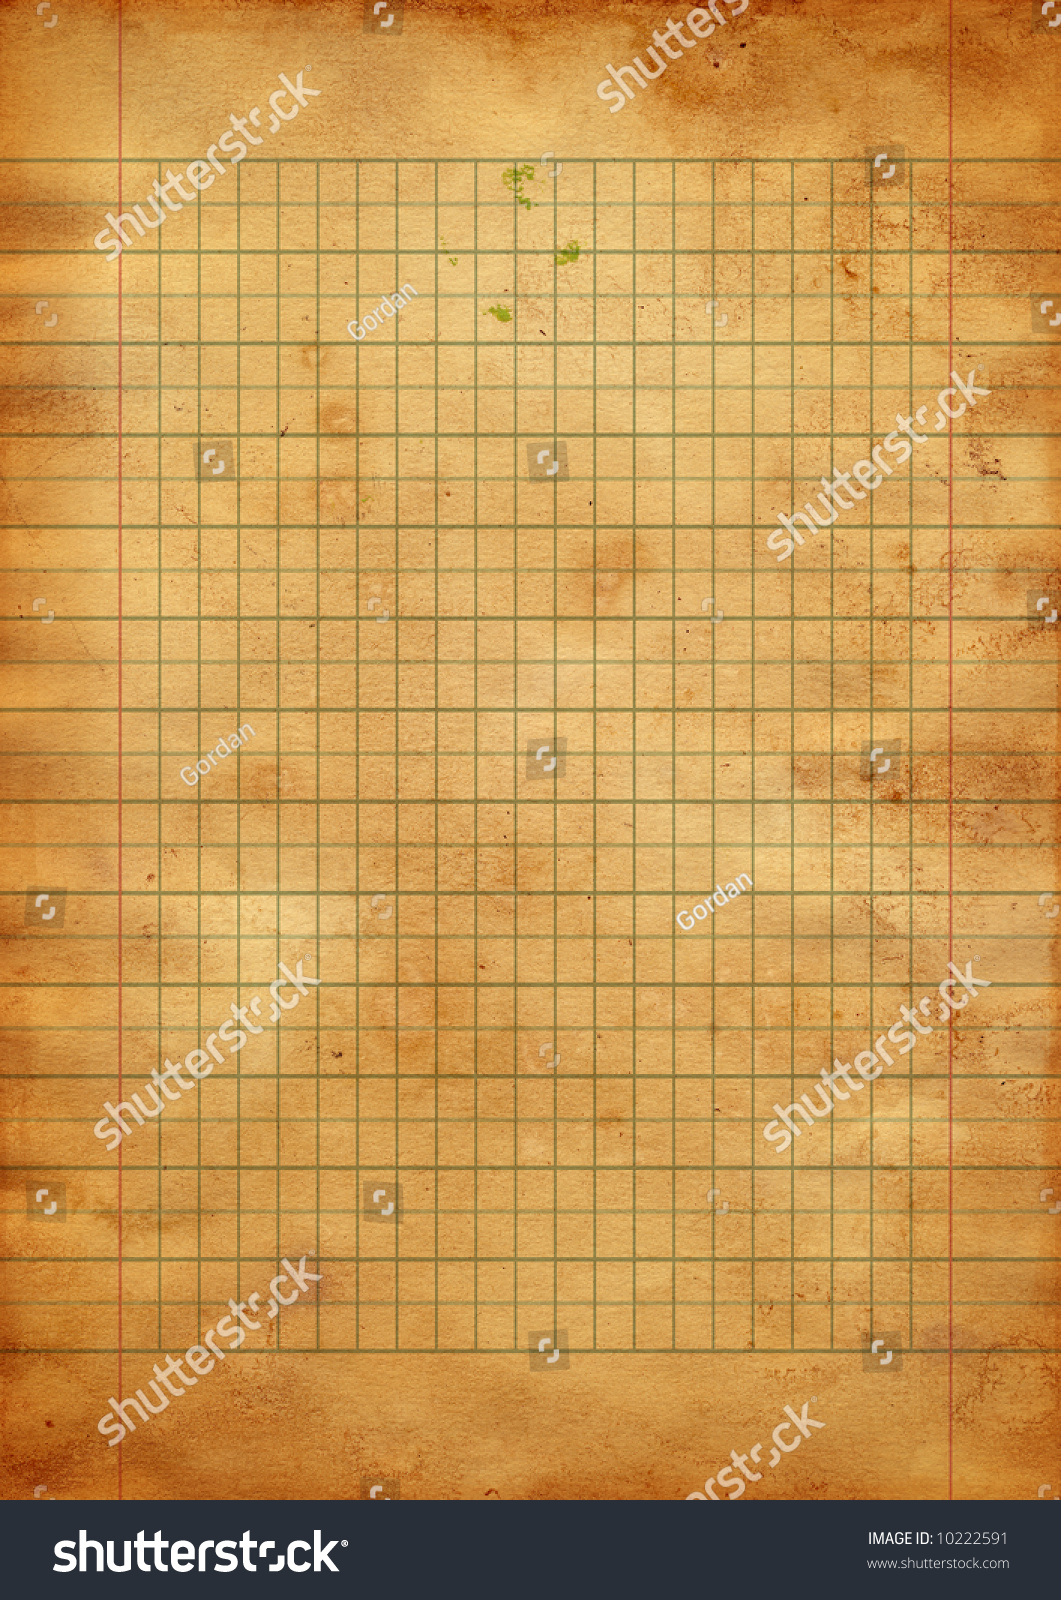 Notebook Paper Background For Word how to conclude a research – Yellow Notebook Paper Background